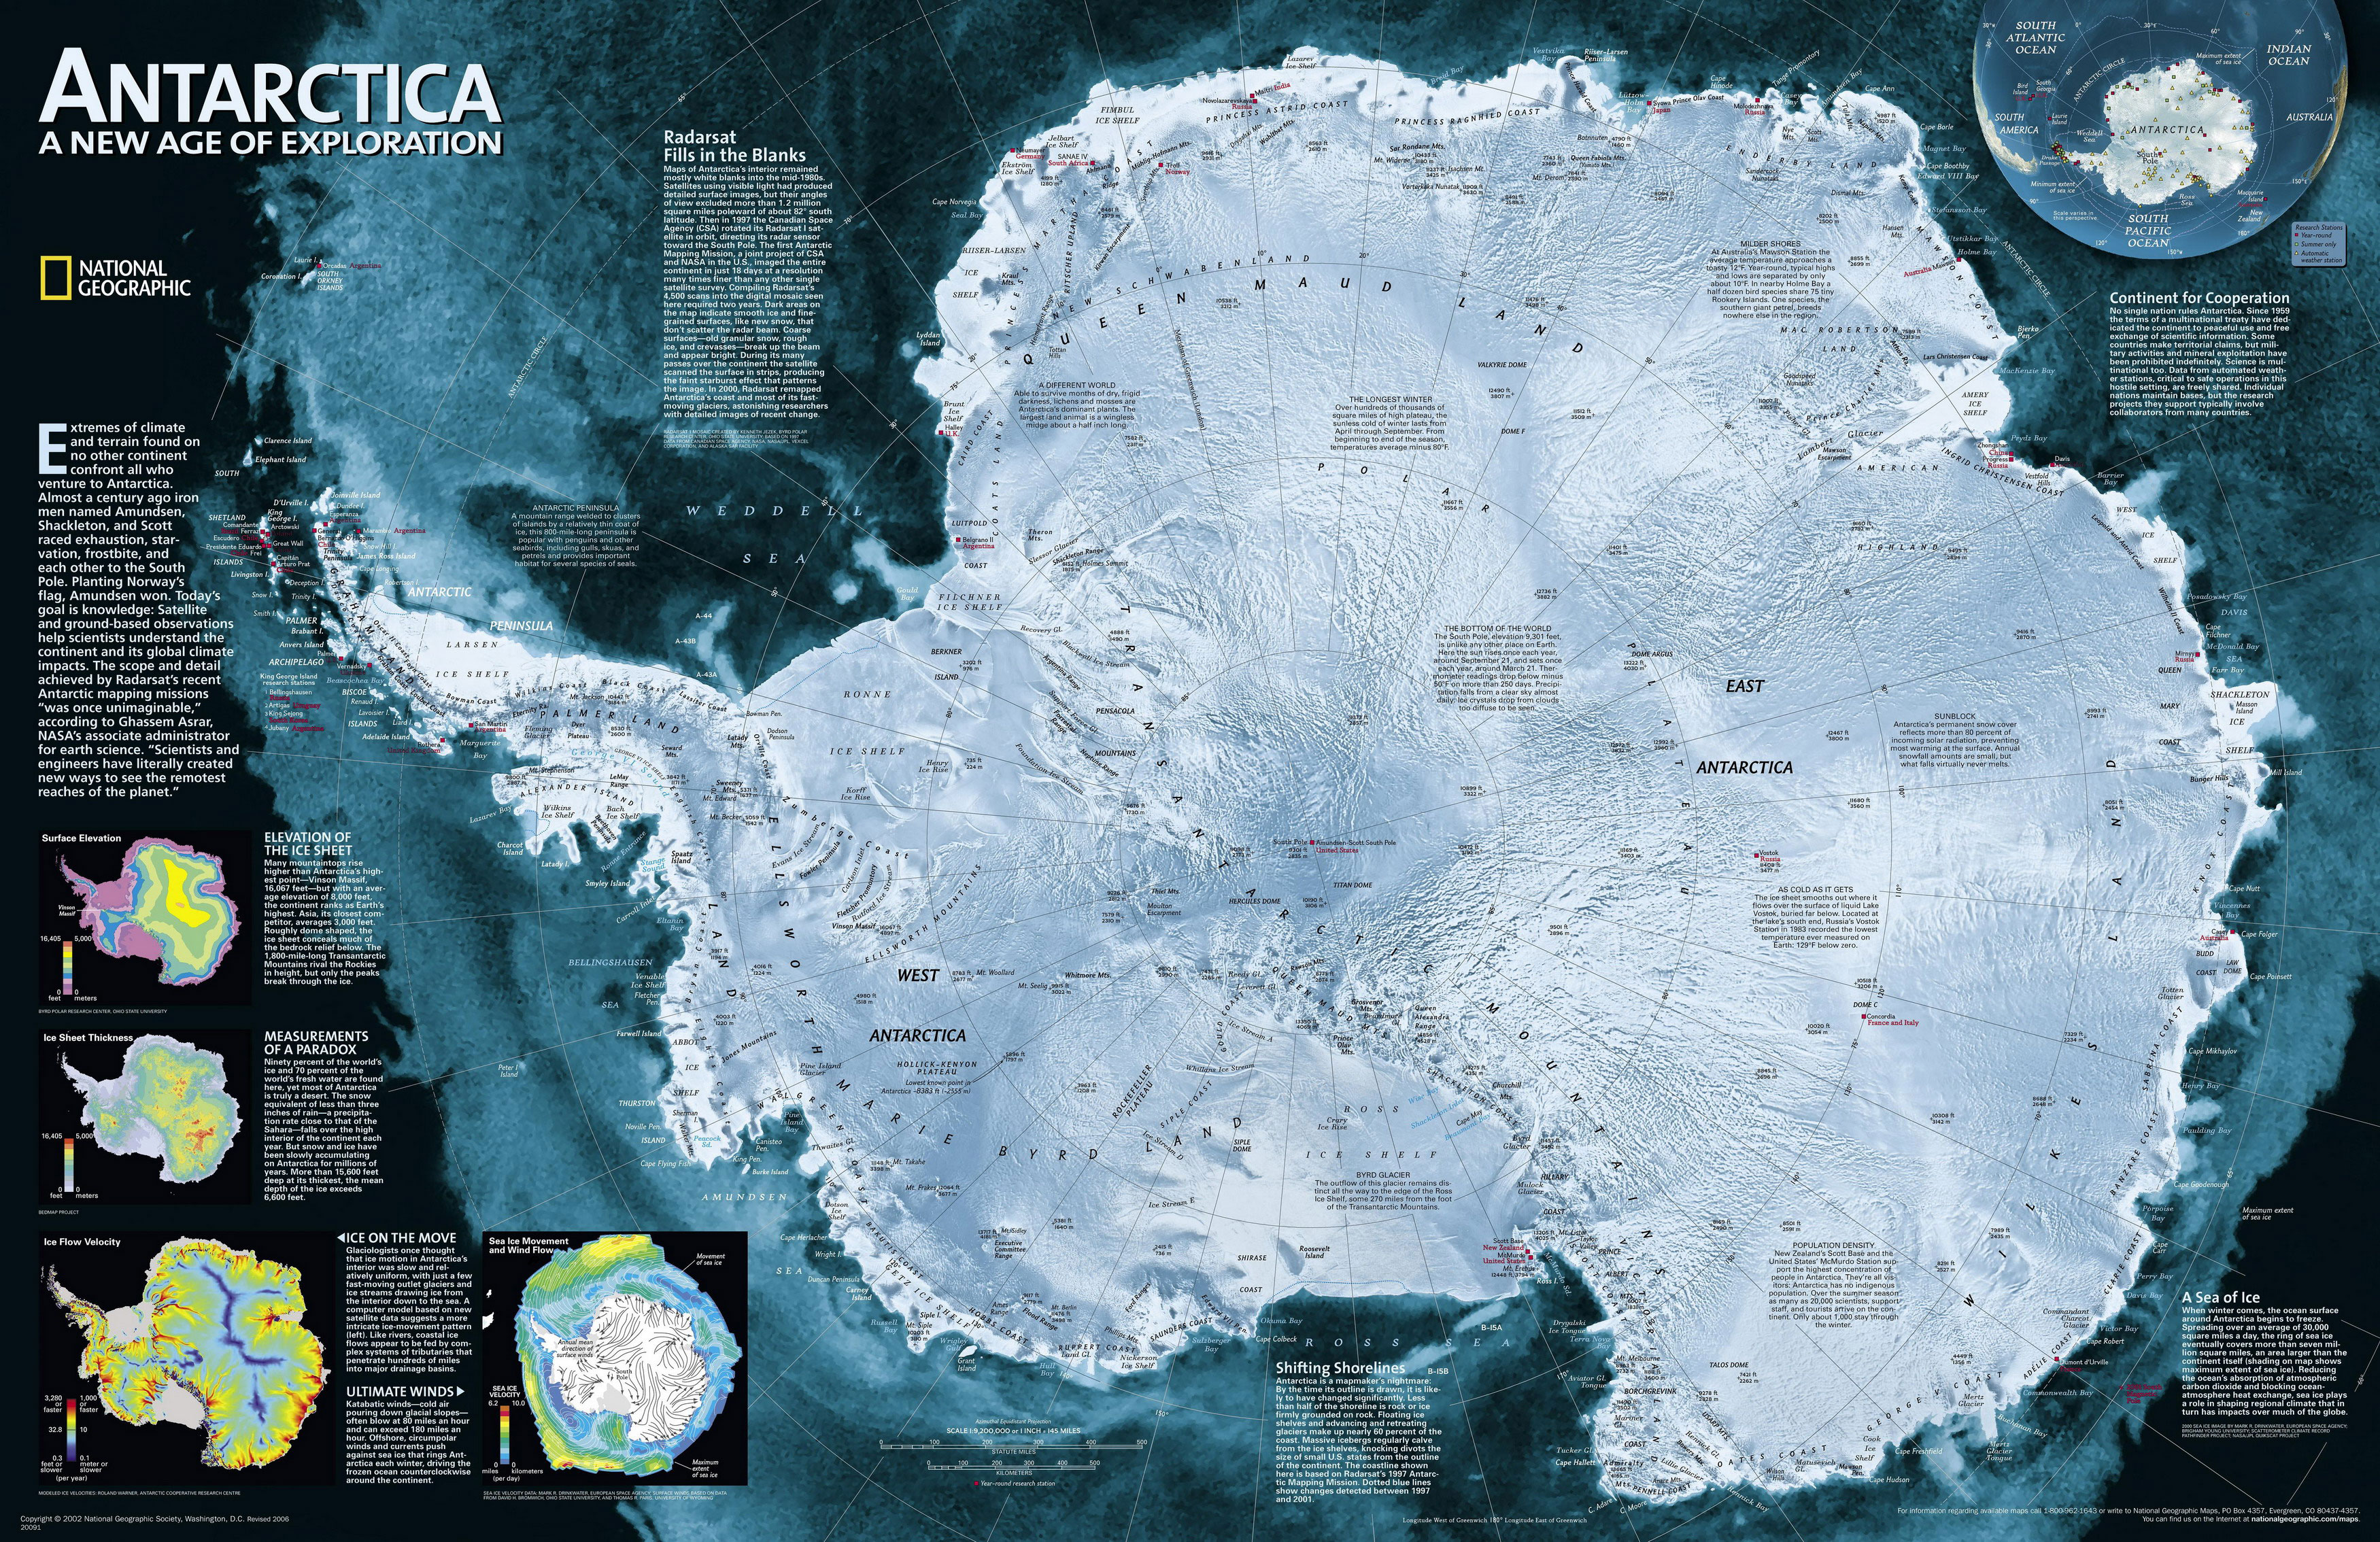 antarctica-map-ng Таящие ледники в Западной Антарктиде повысят уровень Мирового океана на 4,5 метра